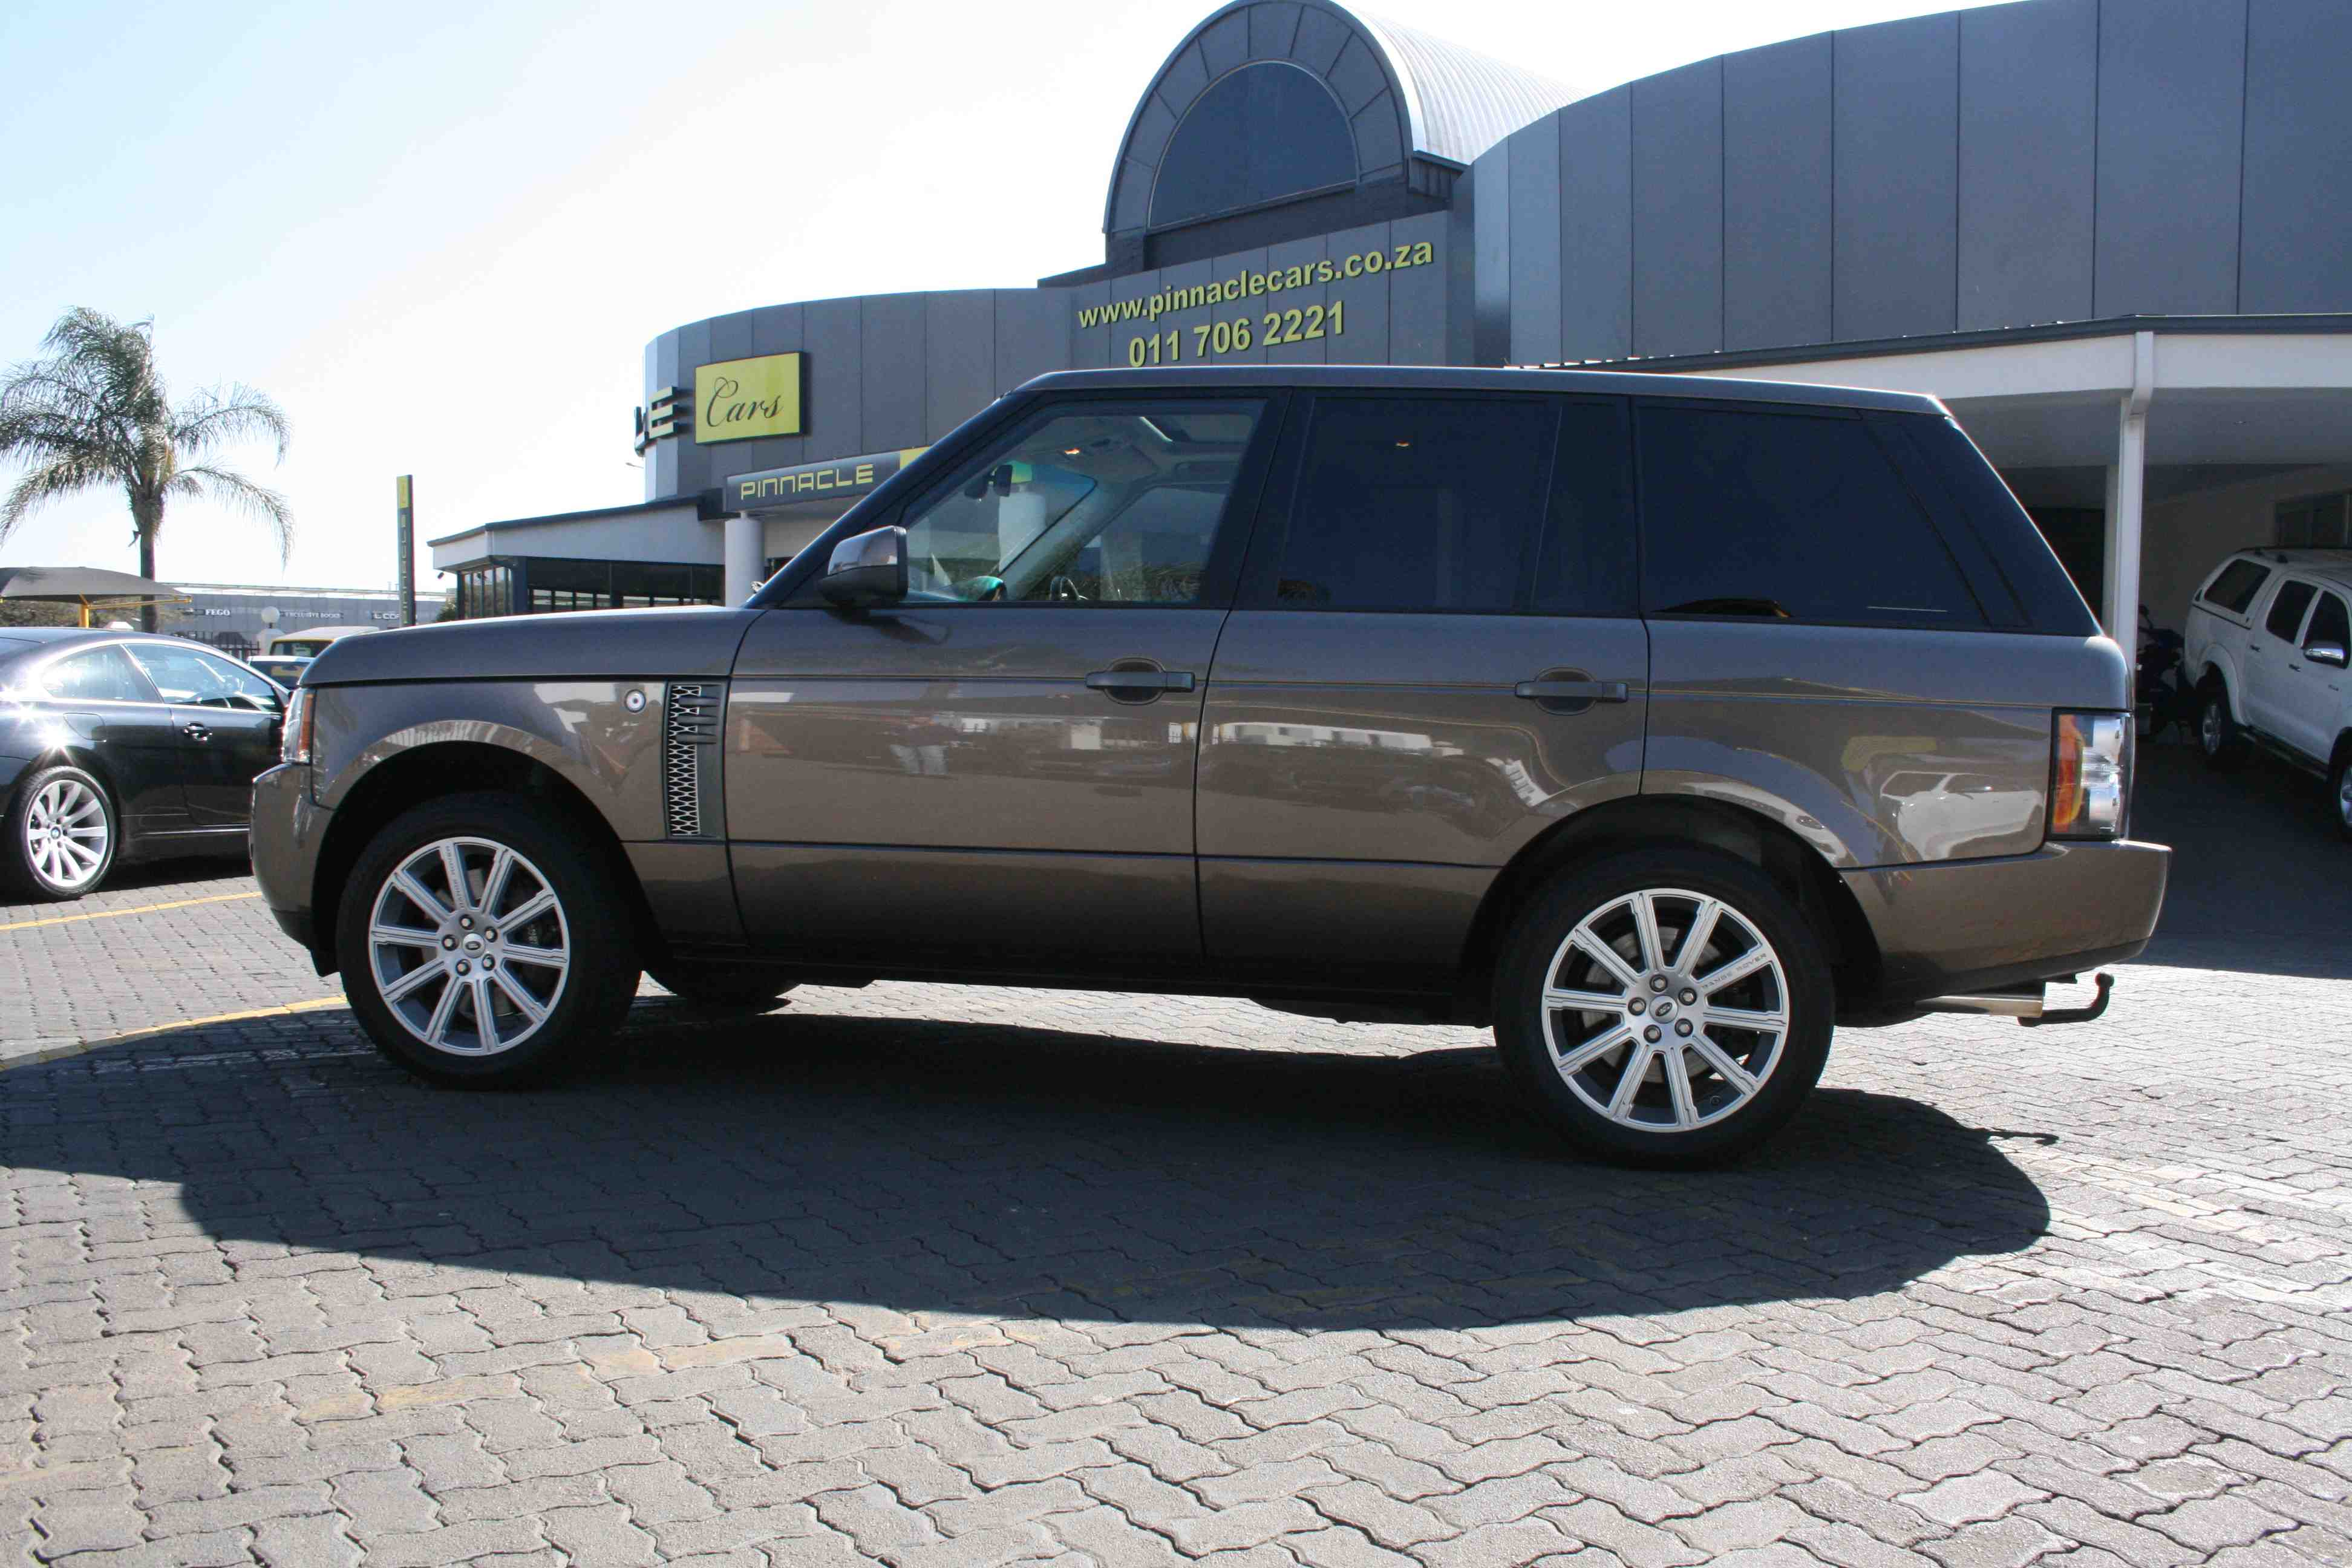 2009 Range Rover 5.0 Supercharged – Used Car Review